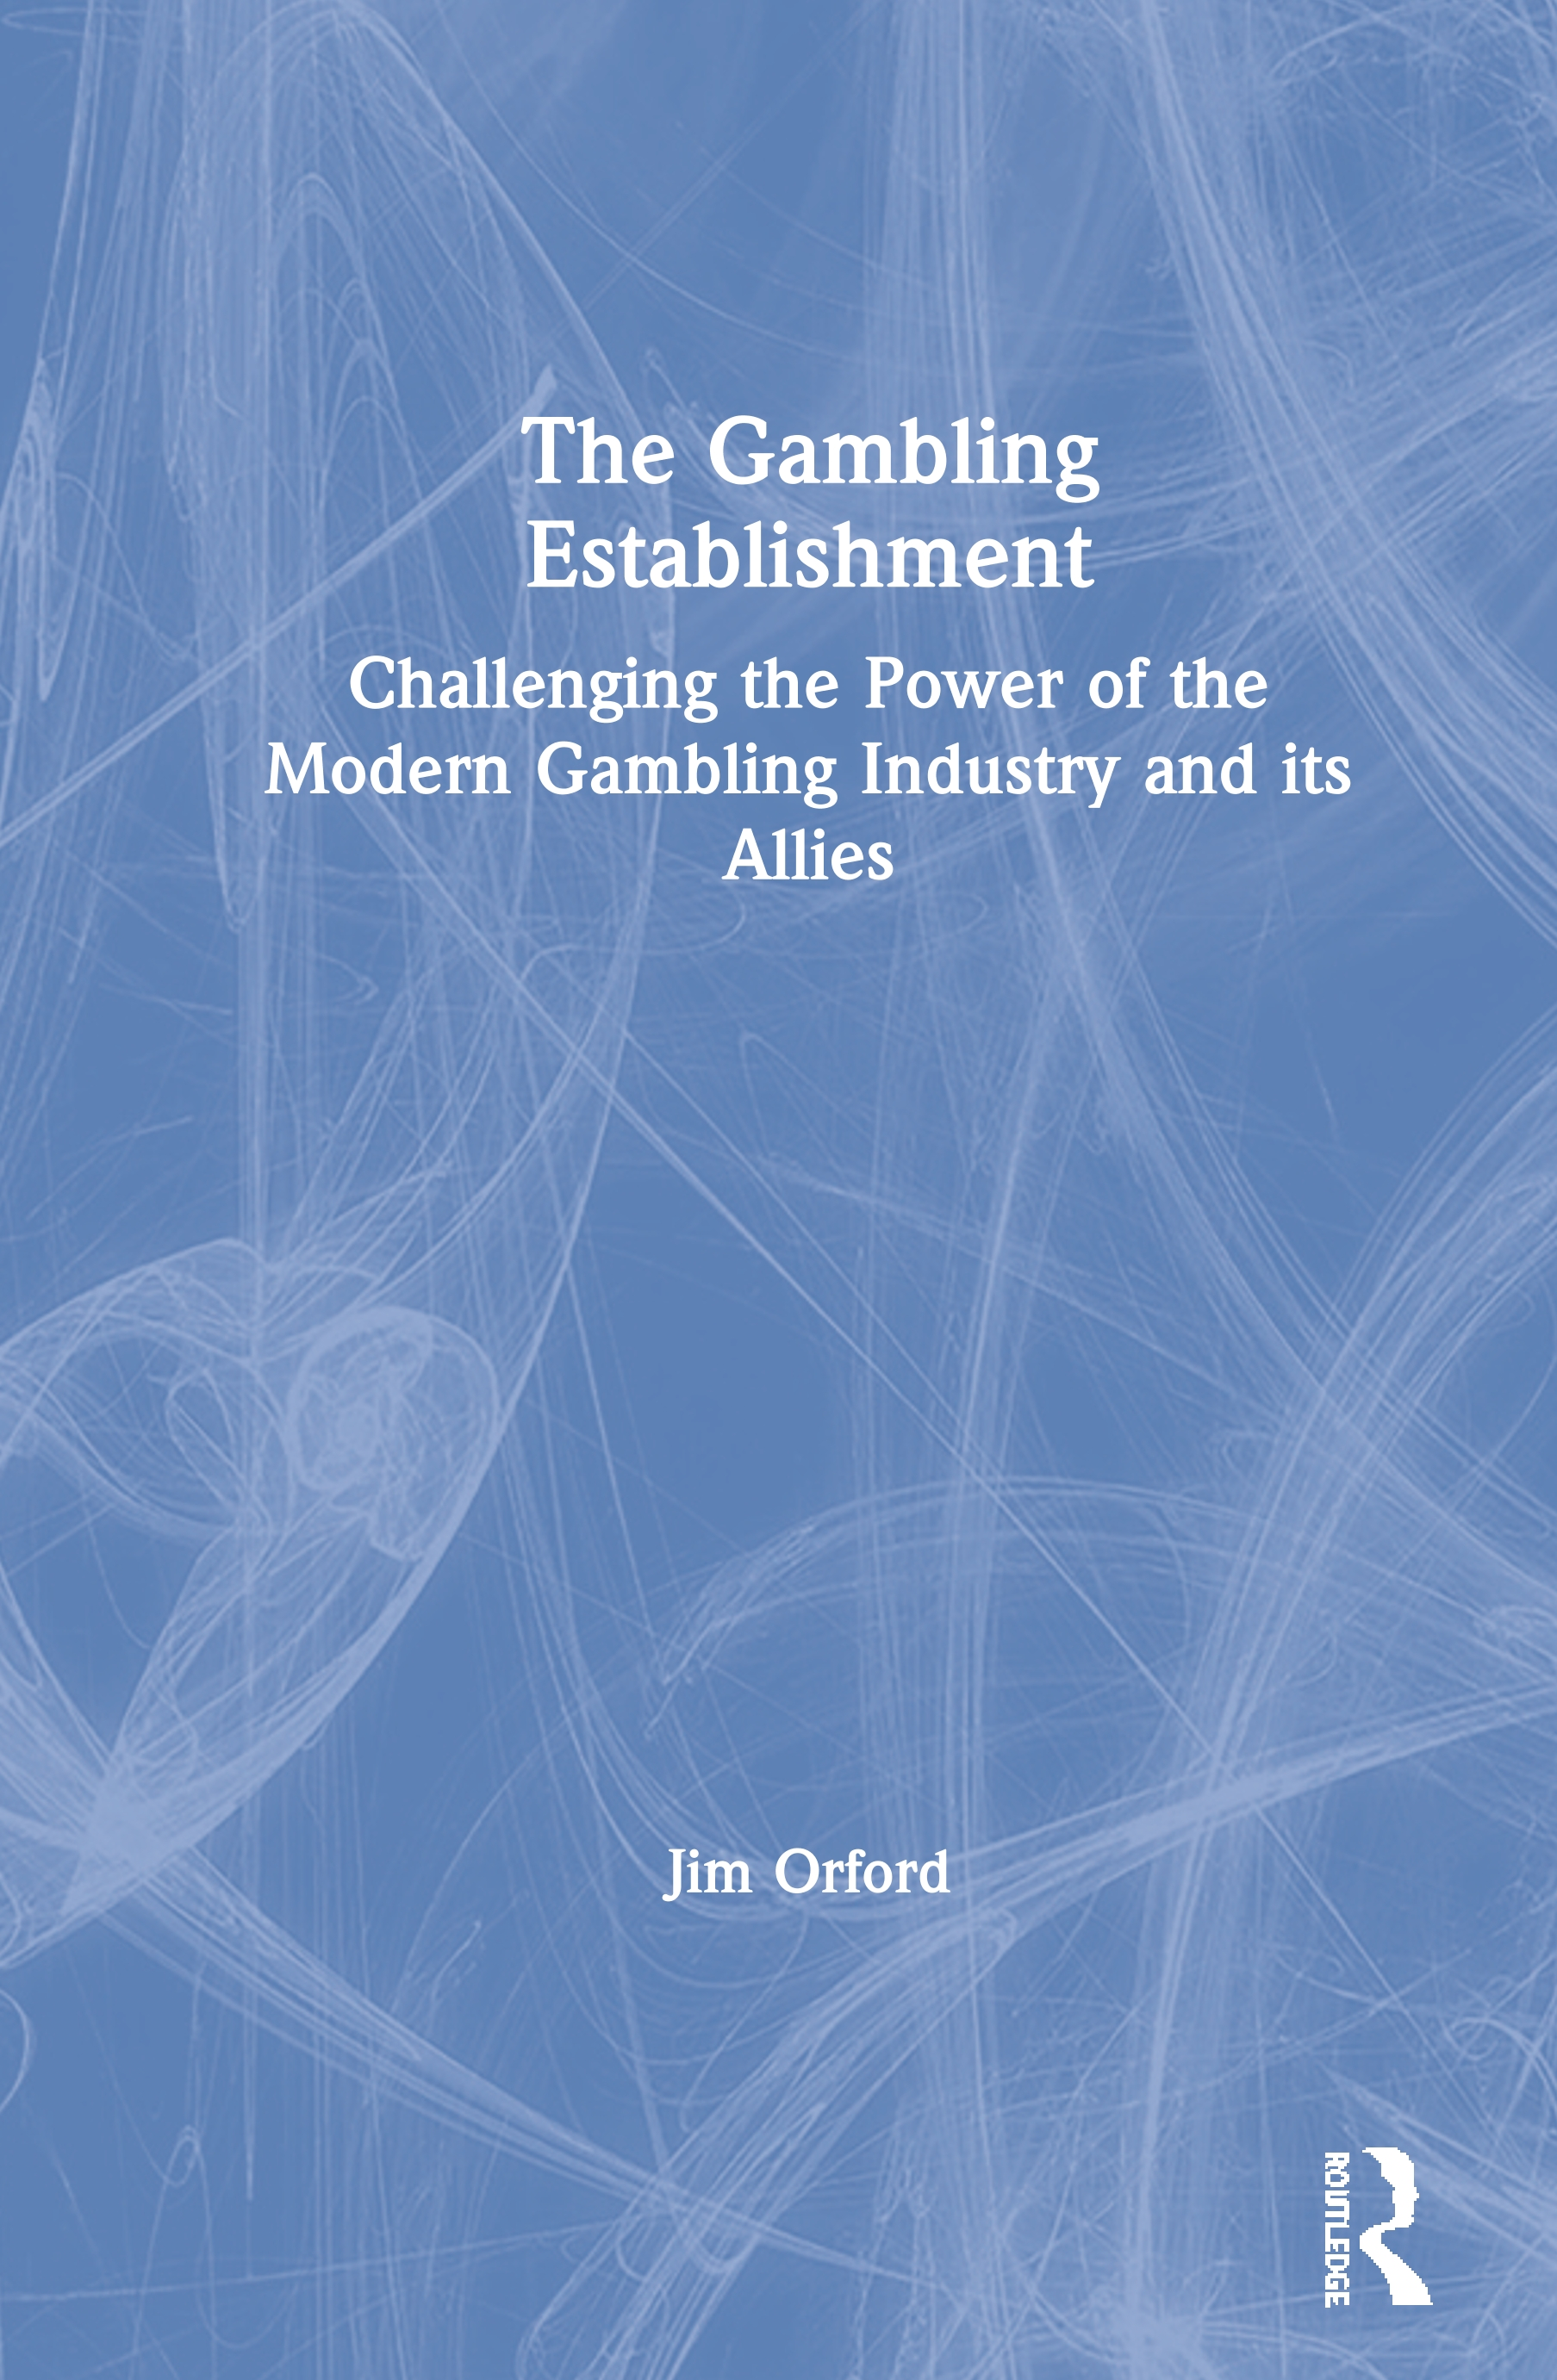 The Gambling Establishment: Challenging the Power of the Modern Gambling Industry and its Allies book cover